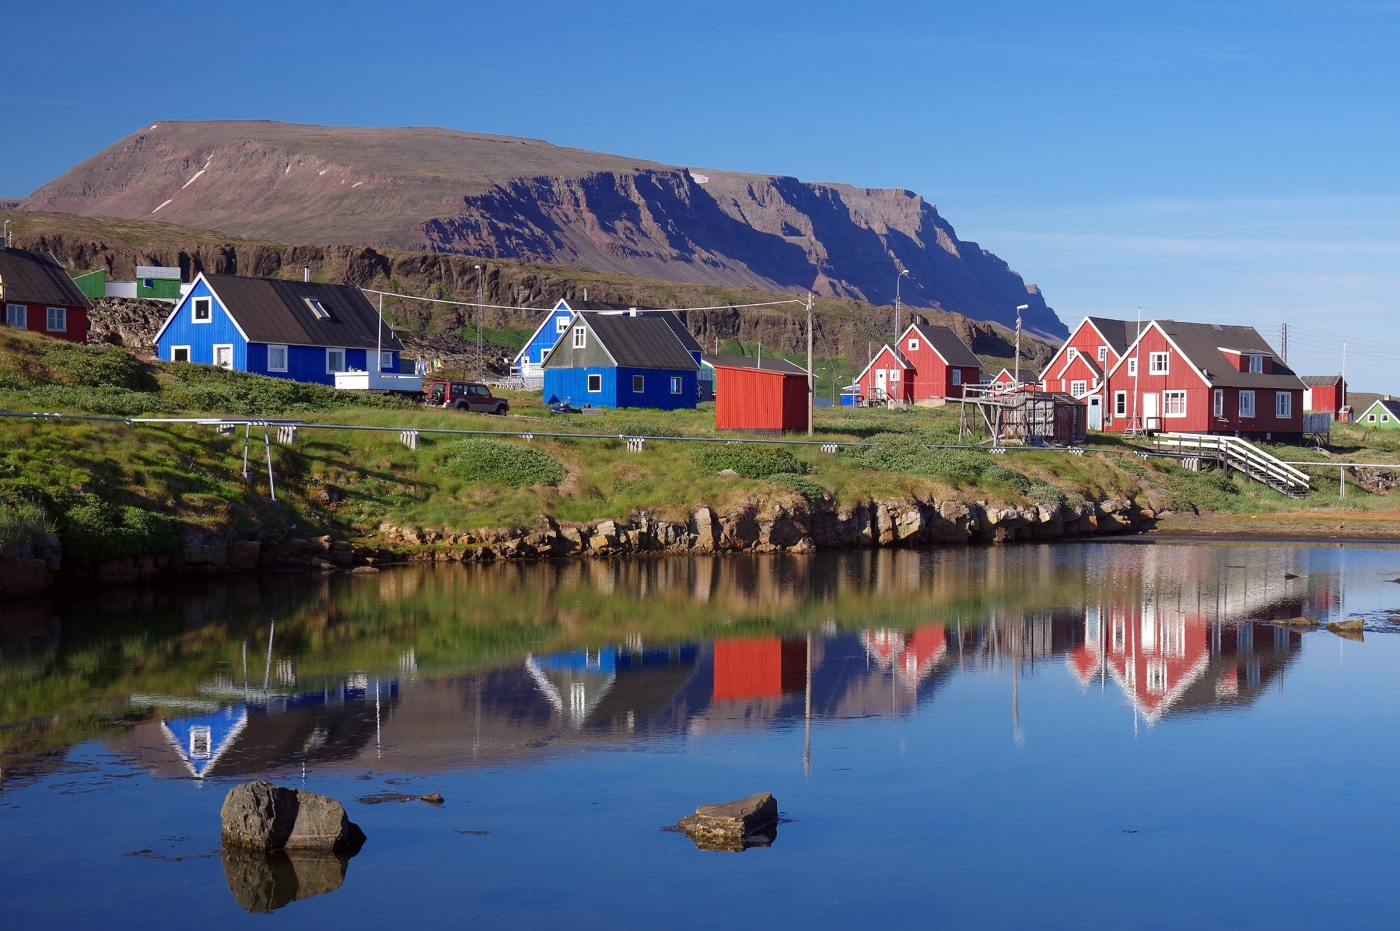 Houses of Qeqertarsuaq and the mountain behind with Lyngmark glacier on top. Photo by Reinhard Pantke - Visit Greenland